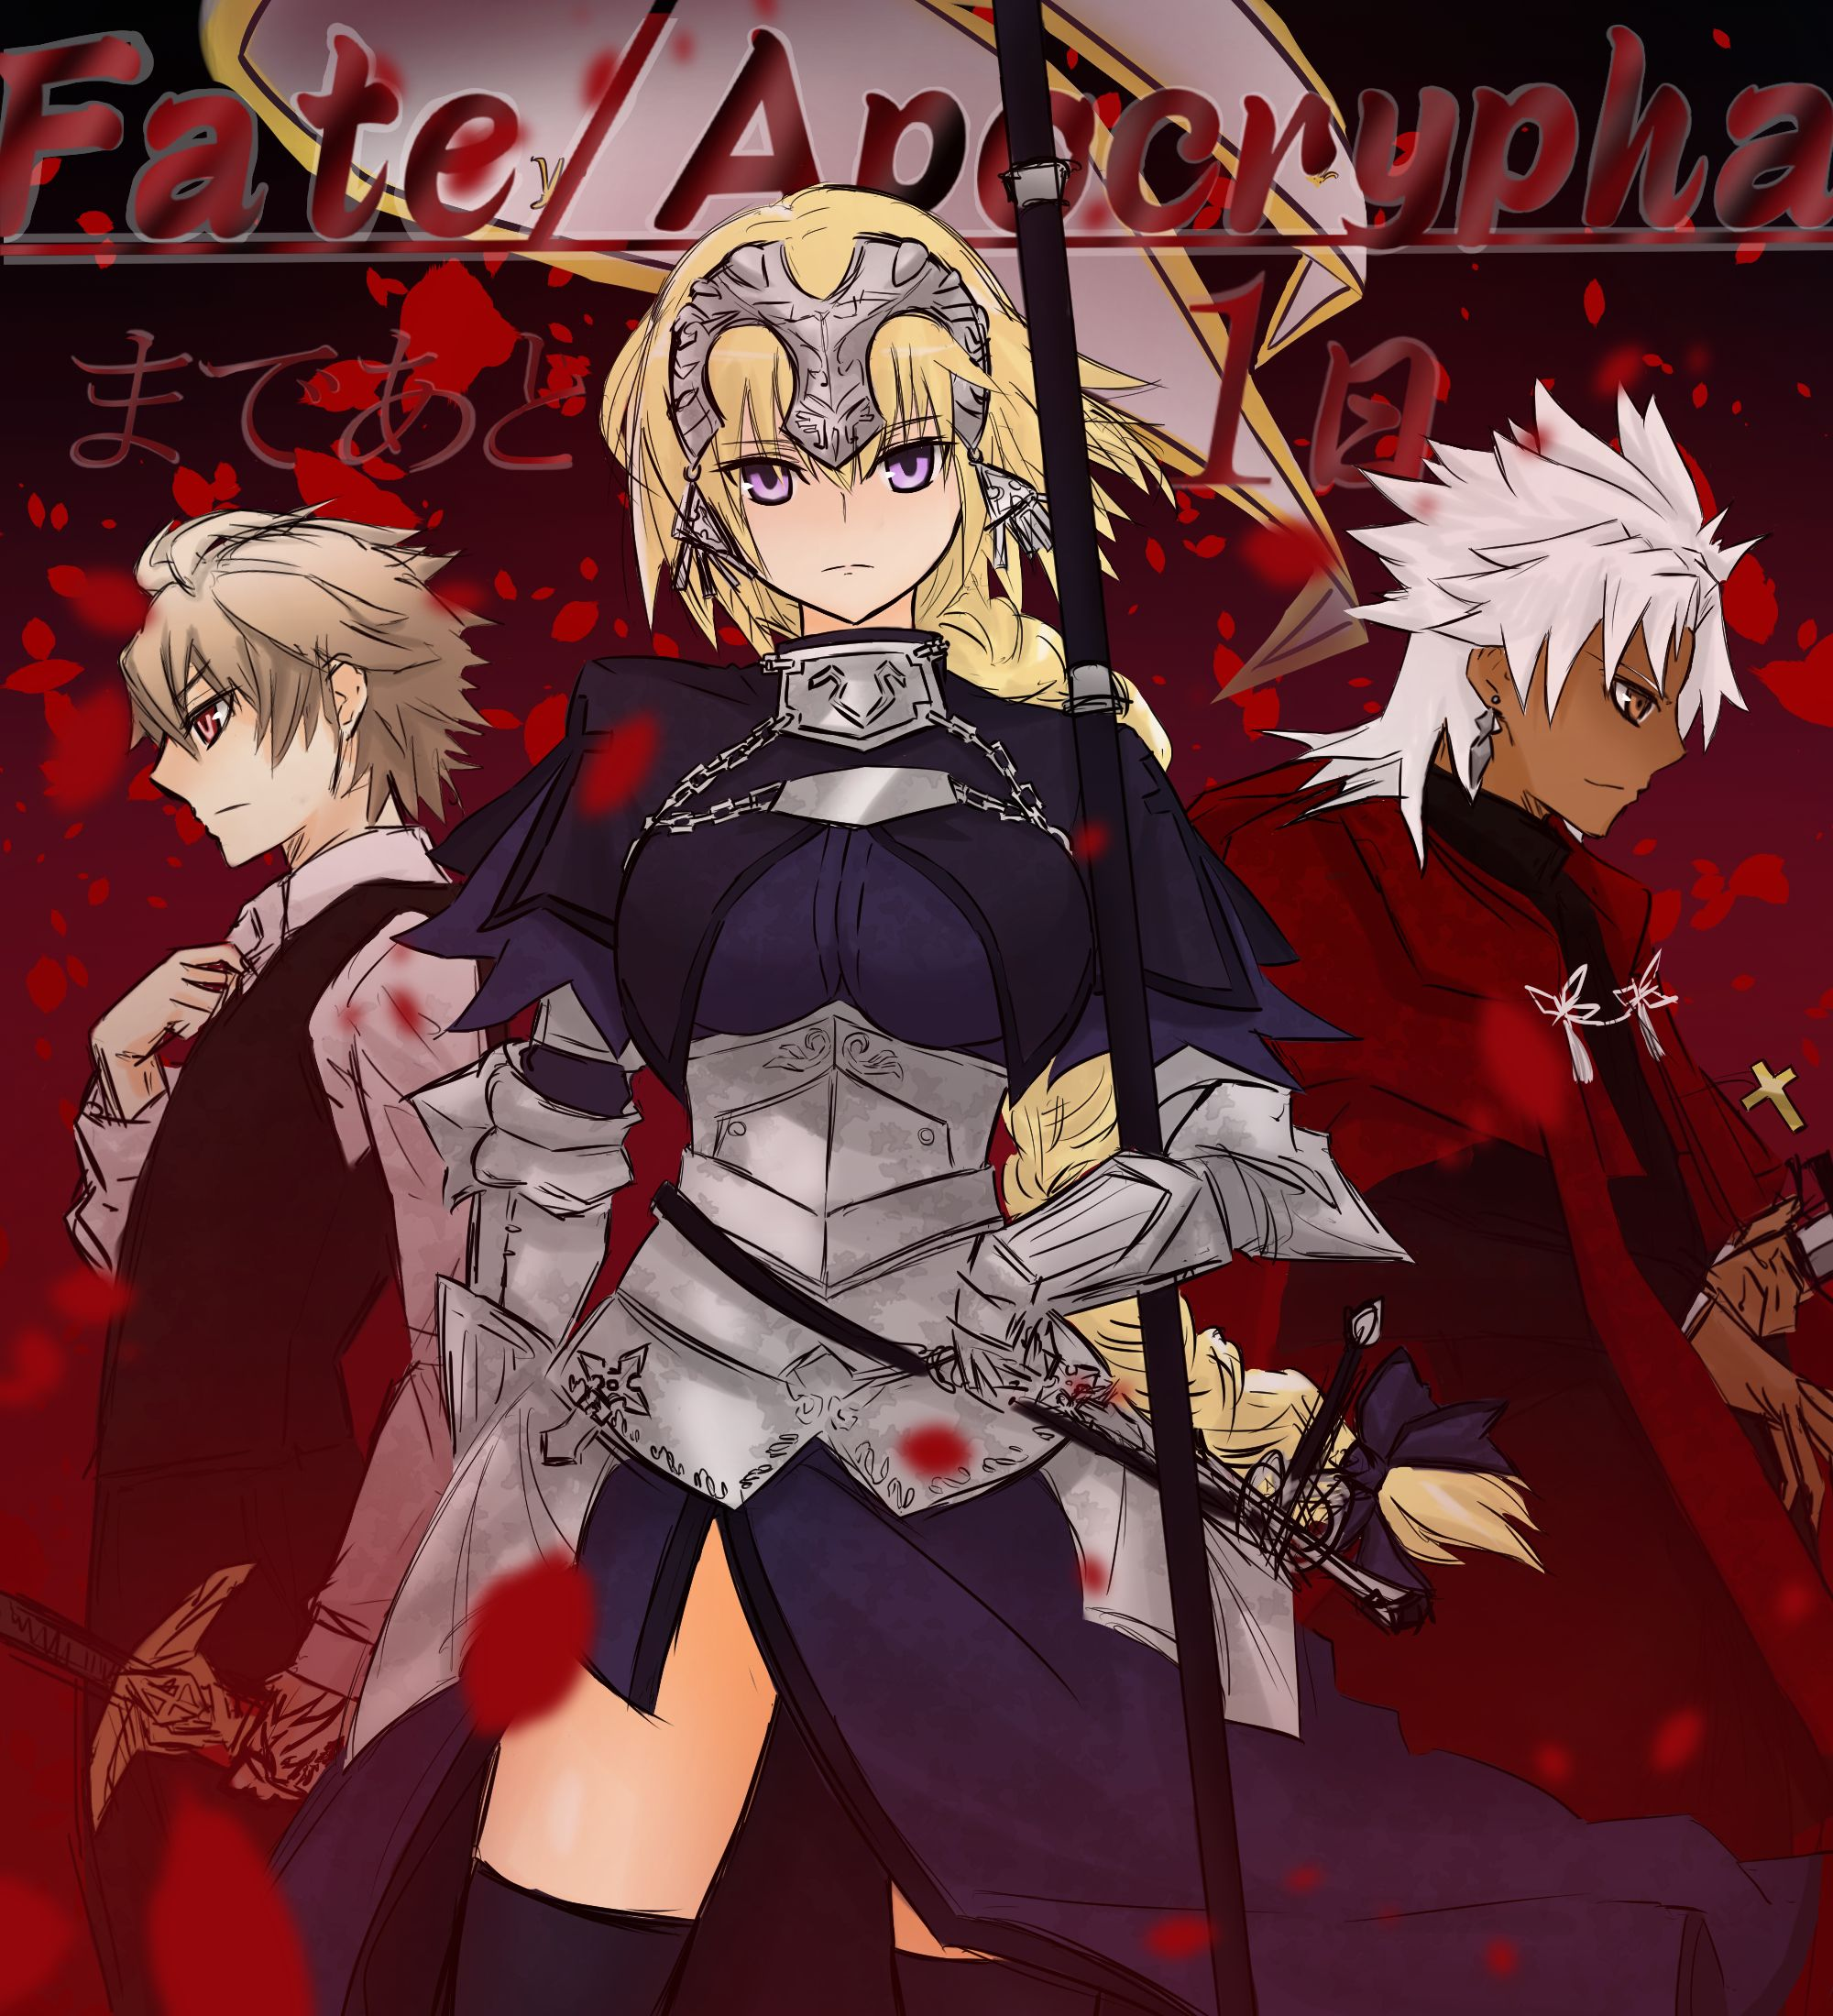 Jeanne One Punch Anime Fate Anime